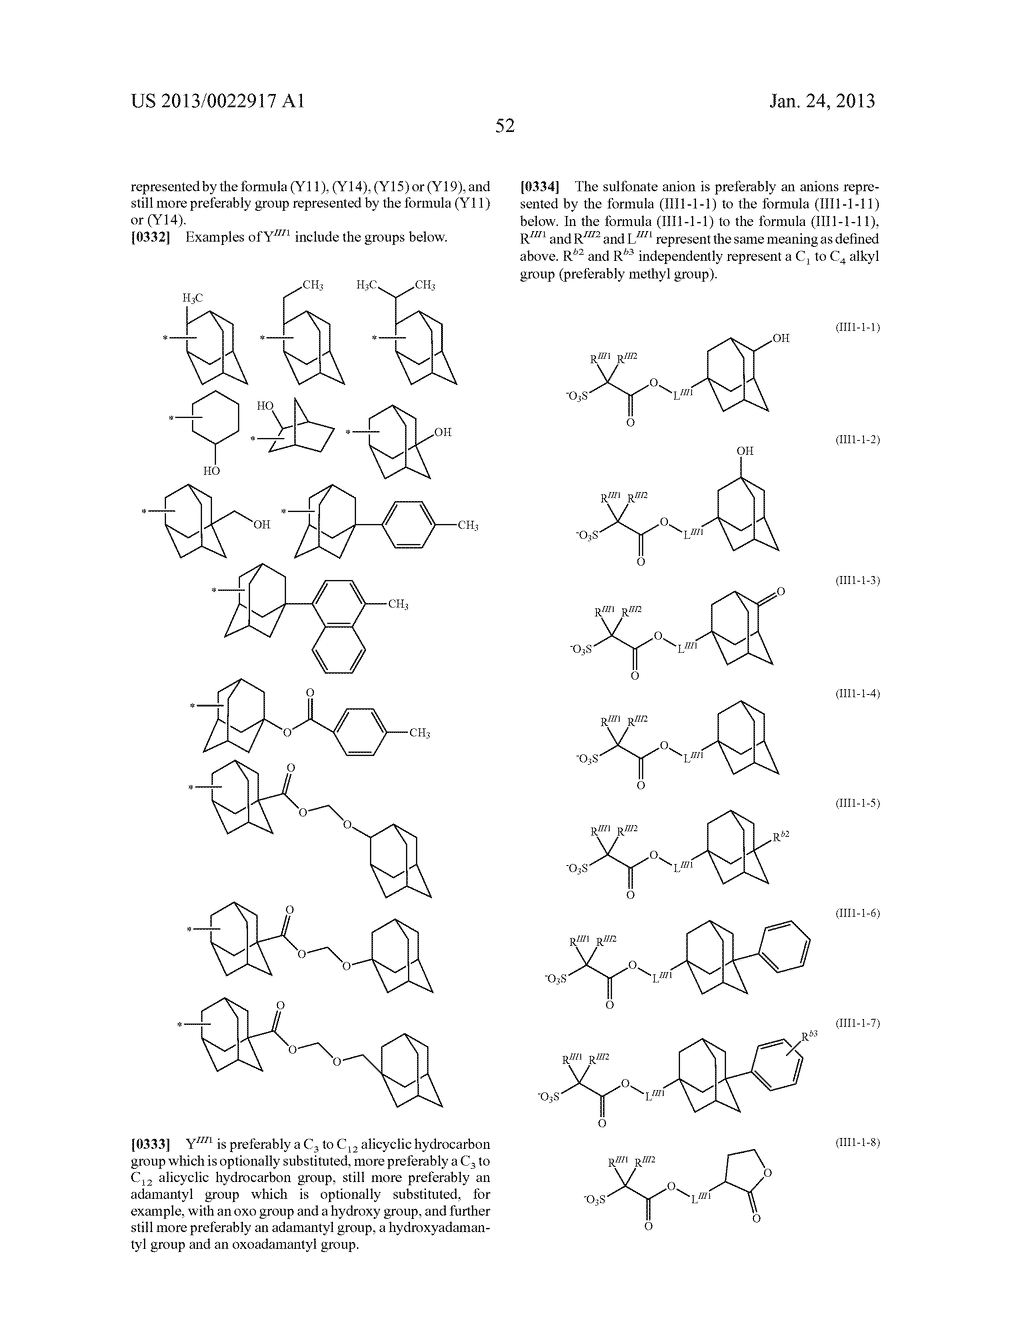 RESIST COMPOSITION AND METHOD FOR PRODUCING RESIST PATTERN - diagram, schematic, and image 53